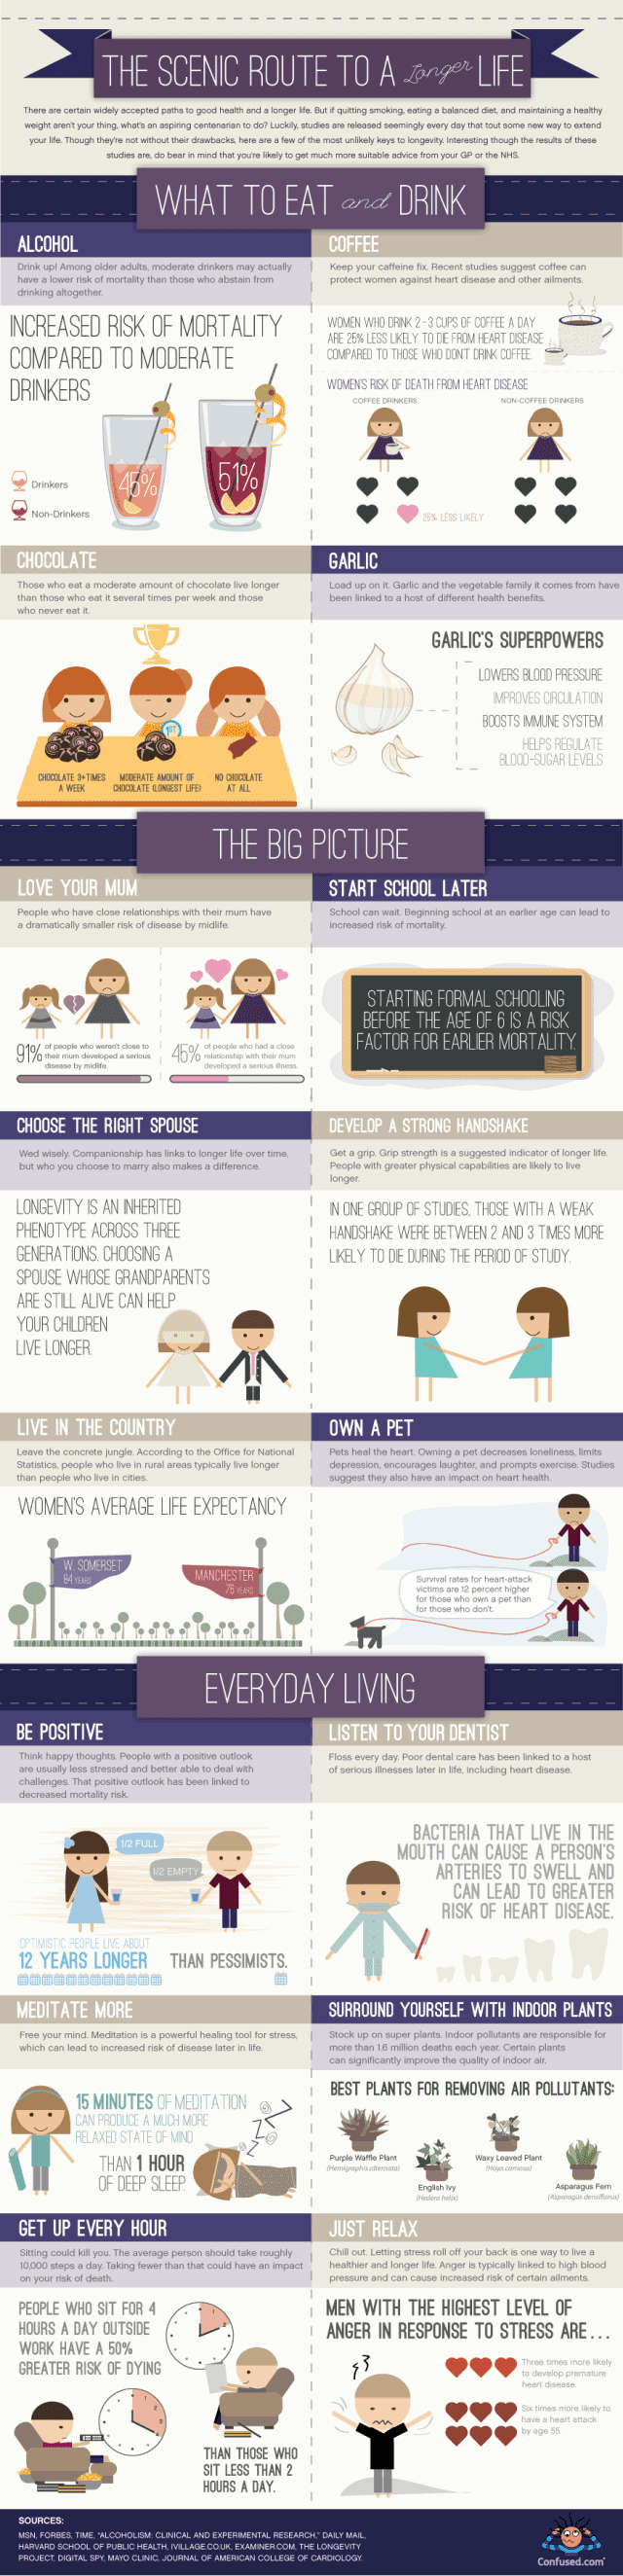 The Scenic Route to a Longer Life [Infographic] | Daily Infographic